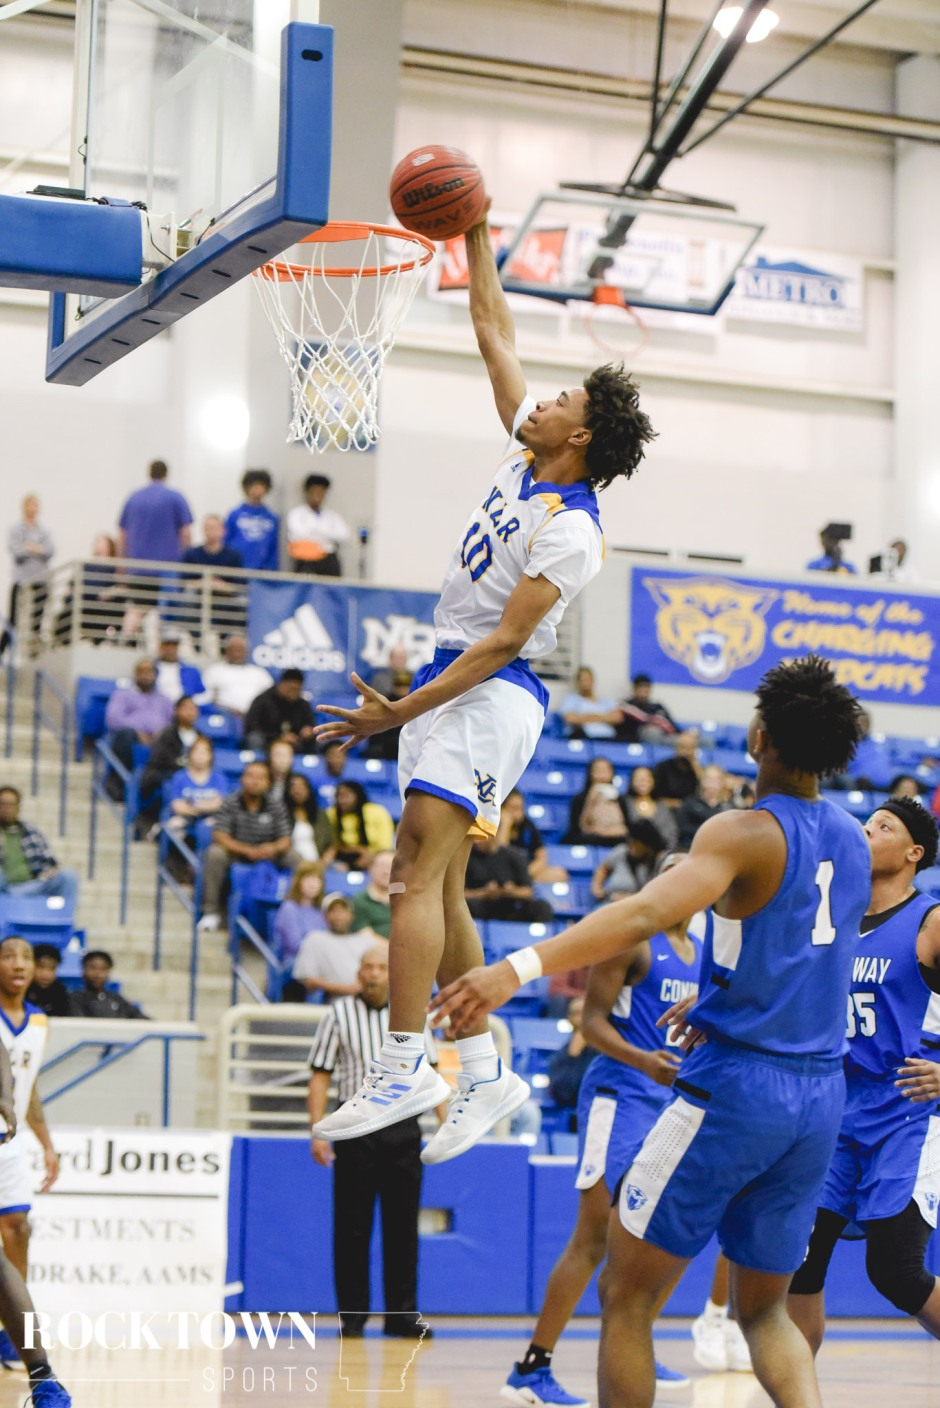 Conway_NLR_bball19(i)-58